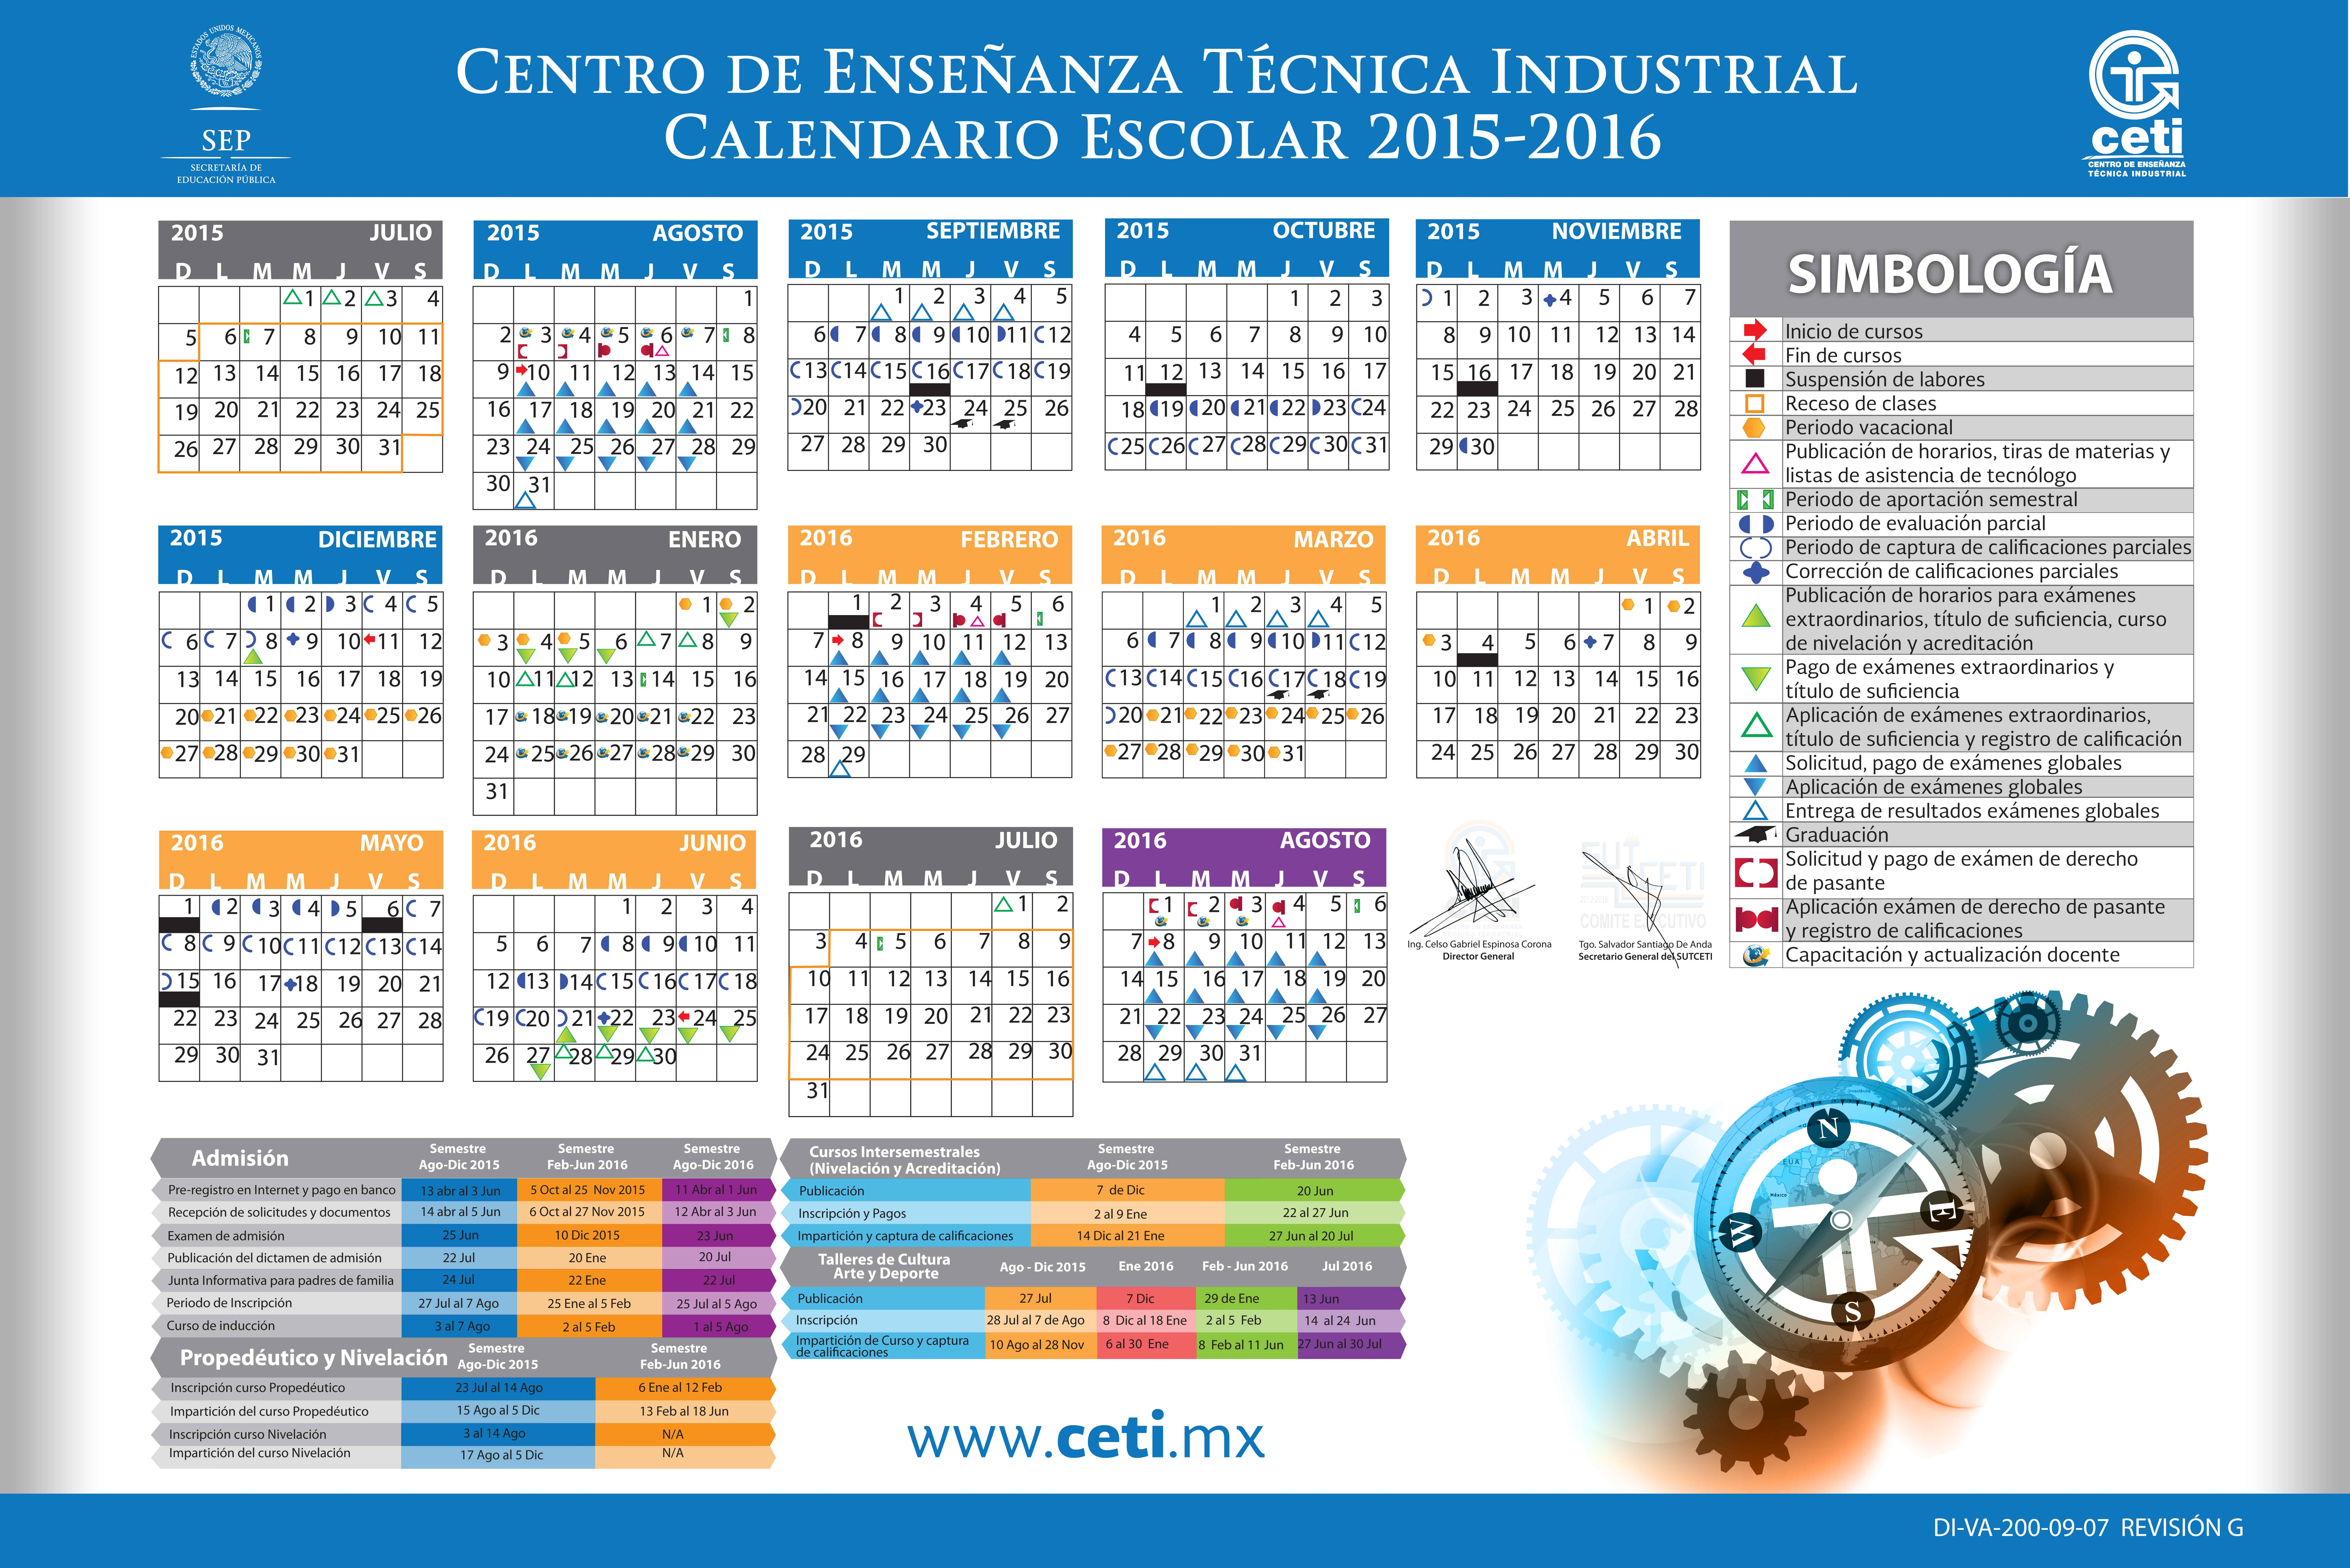 Moen Kitchen Faucets Repair Calendario De Competiciones 2015 2016 Bienvenido A La